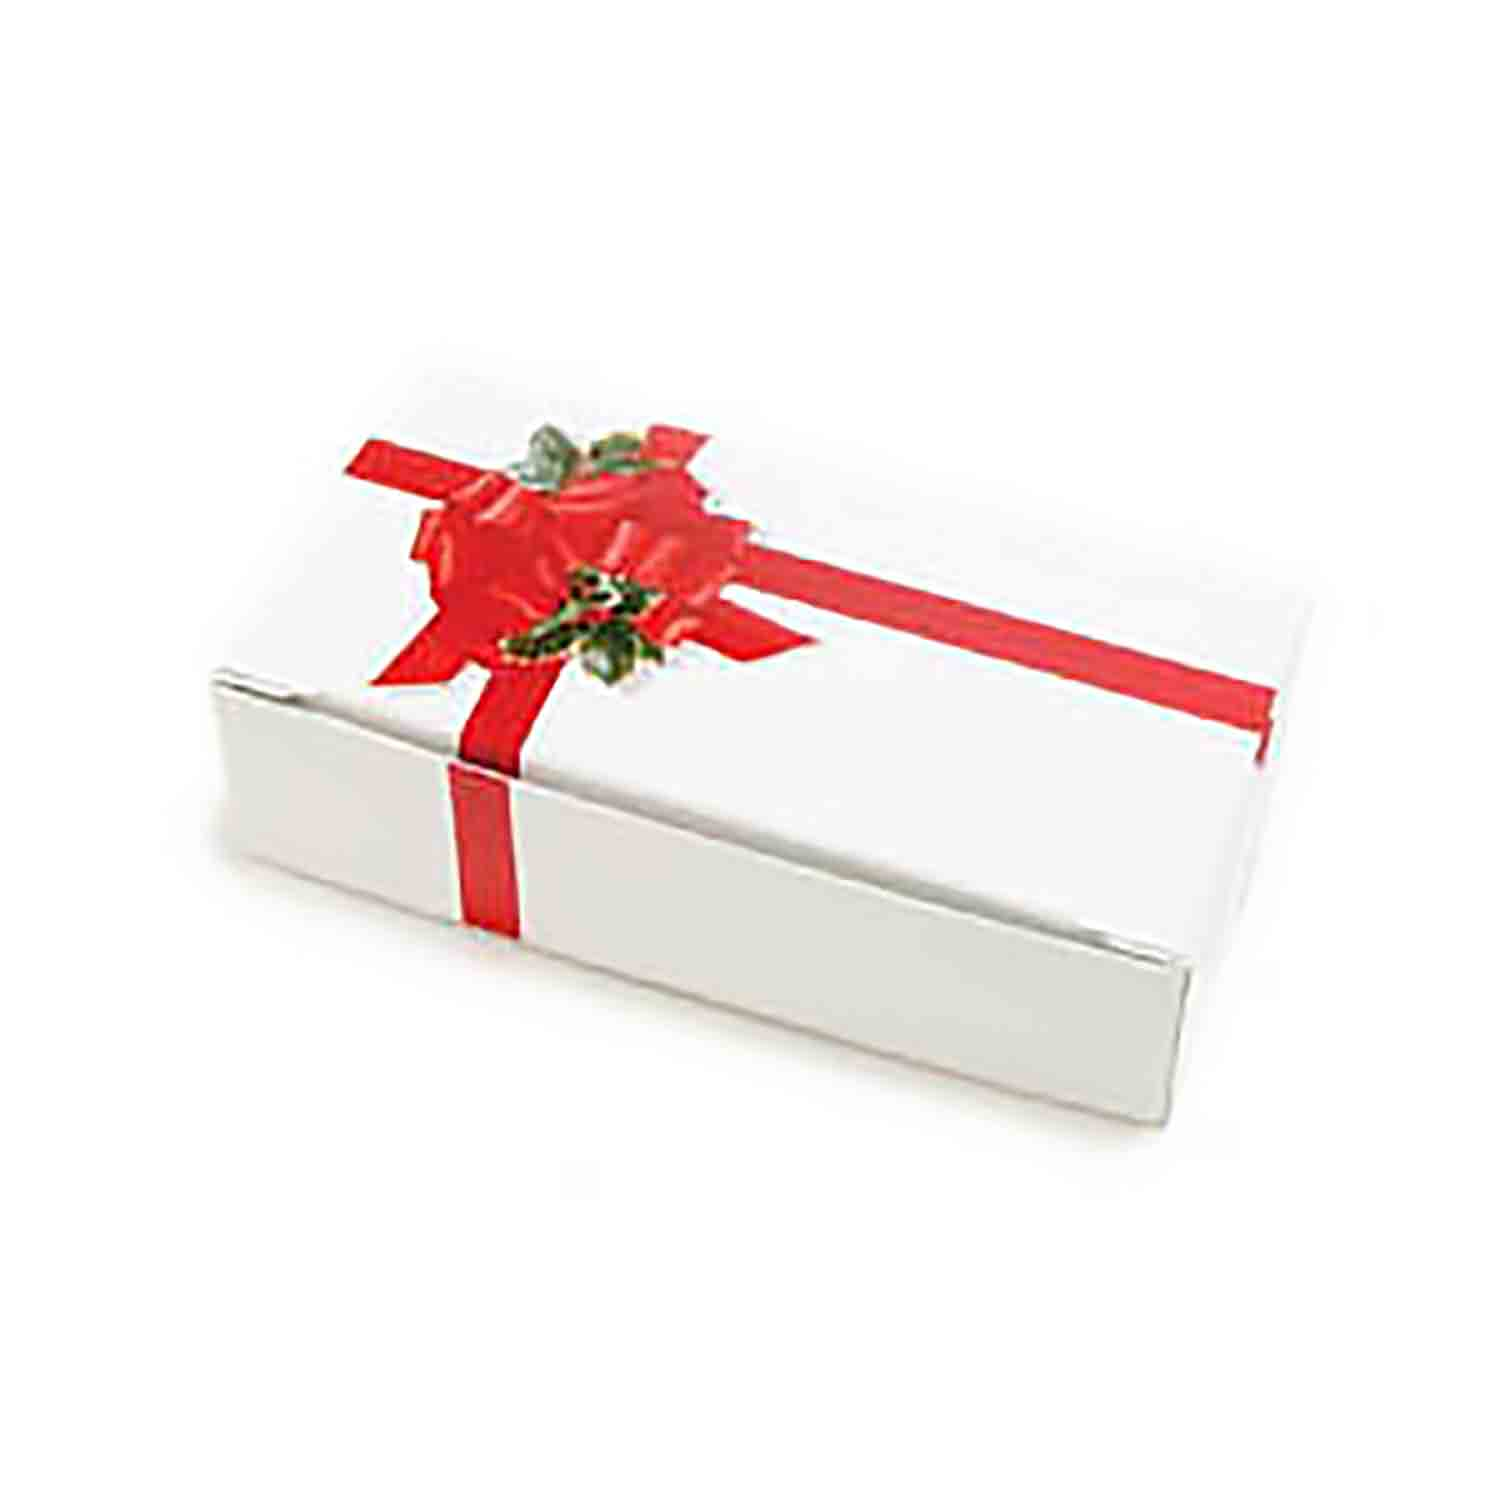 1 1/2 lb. Ribbon & Holly Candy Box